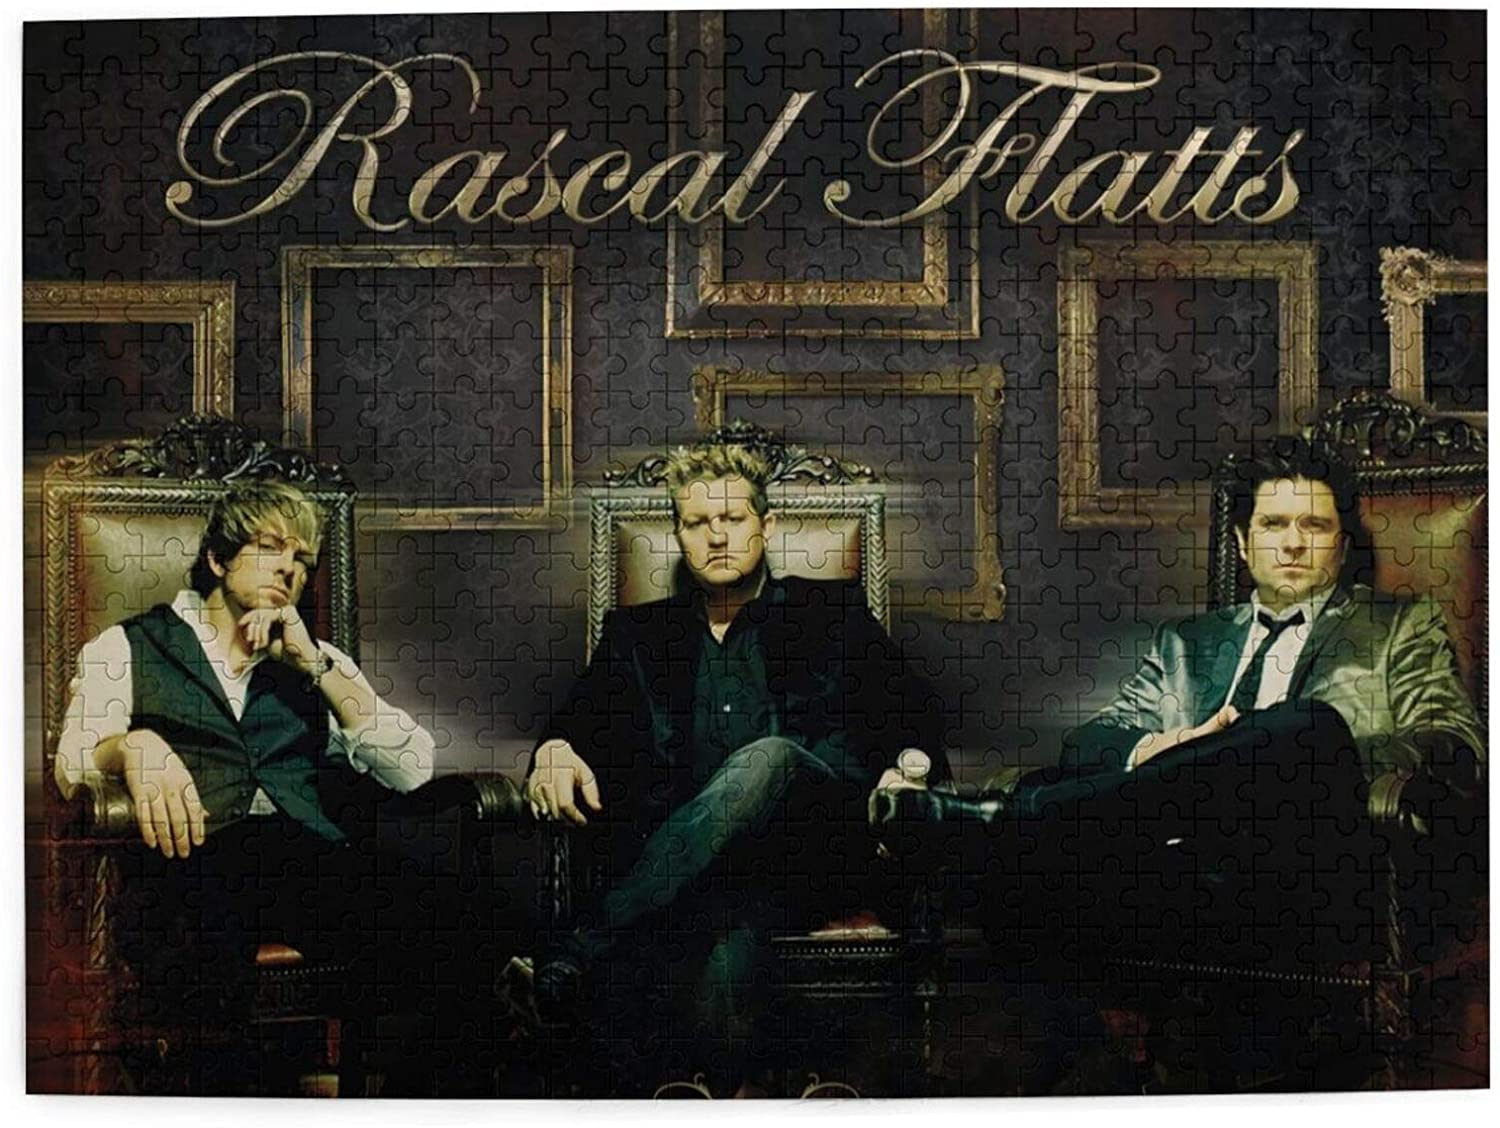 Vsldfjc Music Rascal Flatts Buffalo Games - 500 Piece Large Jigsaw Puzzle, Challenging Puzzle Game, Wooden Puzzles for Adults and Teens 20.4 x 15 Inches